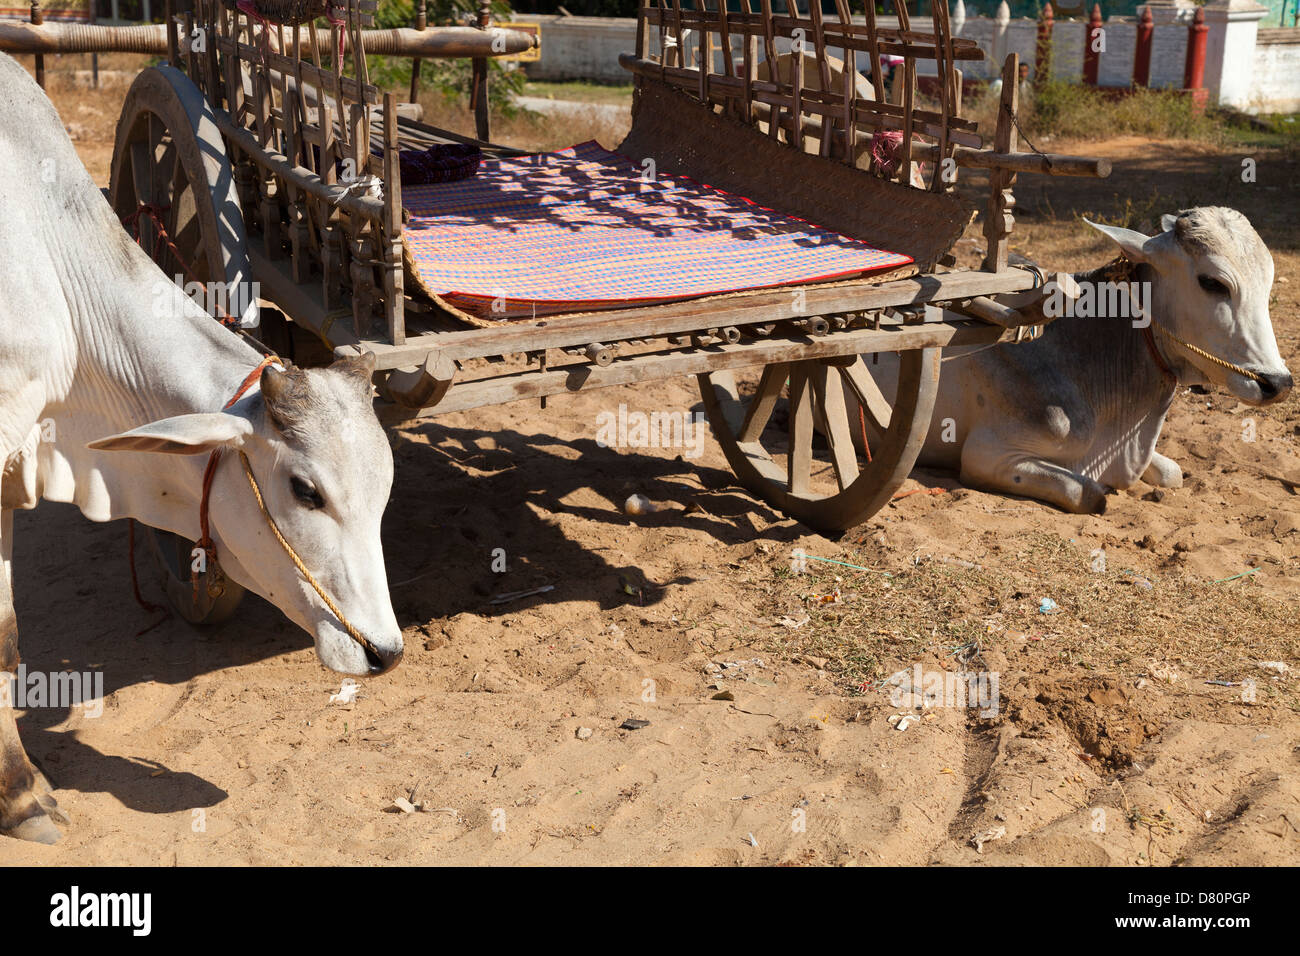 Bullocks resting by their cart in Mingun, Myanmar - Stock Image